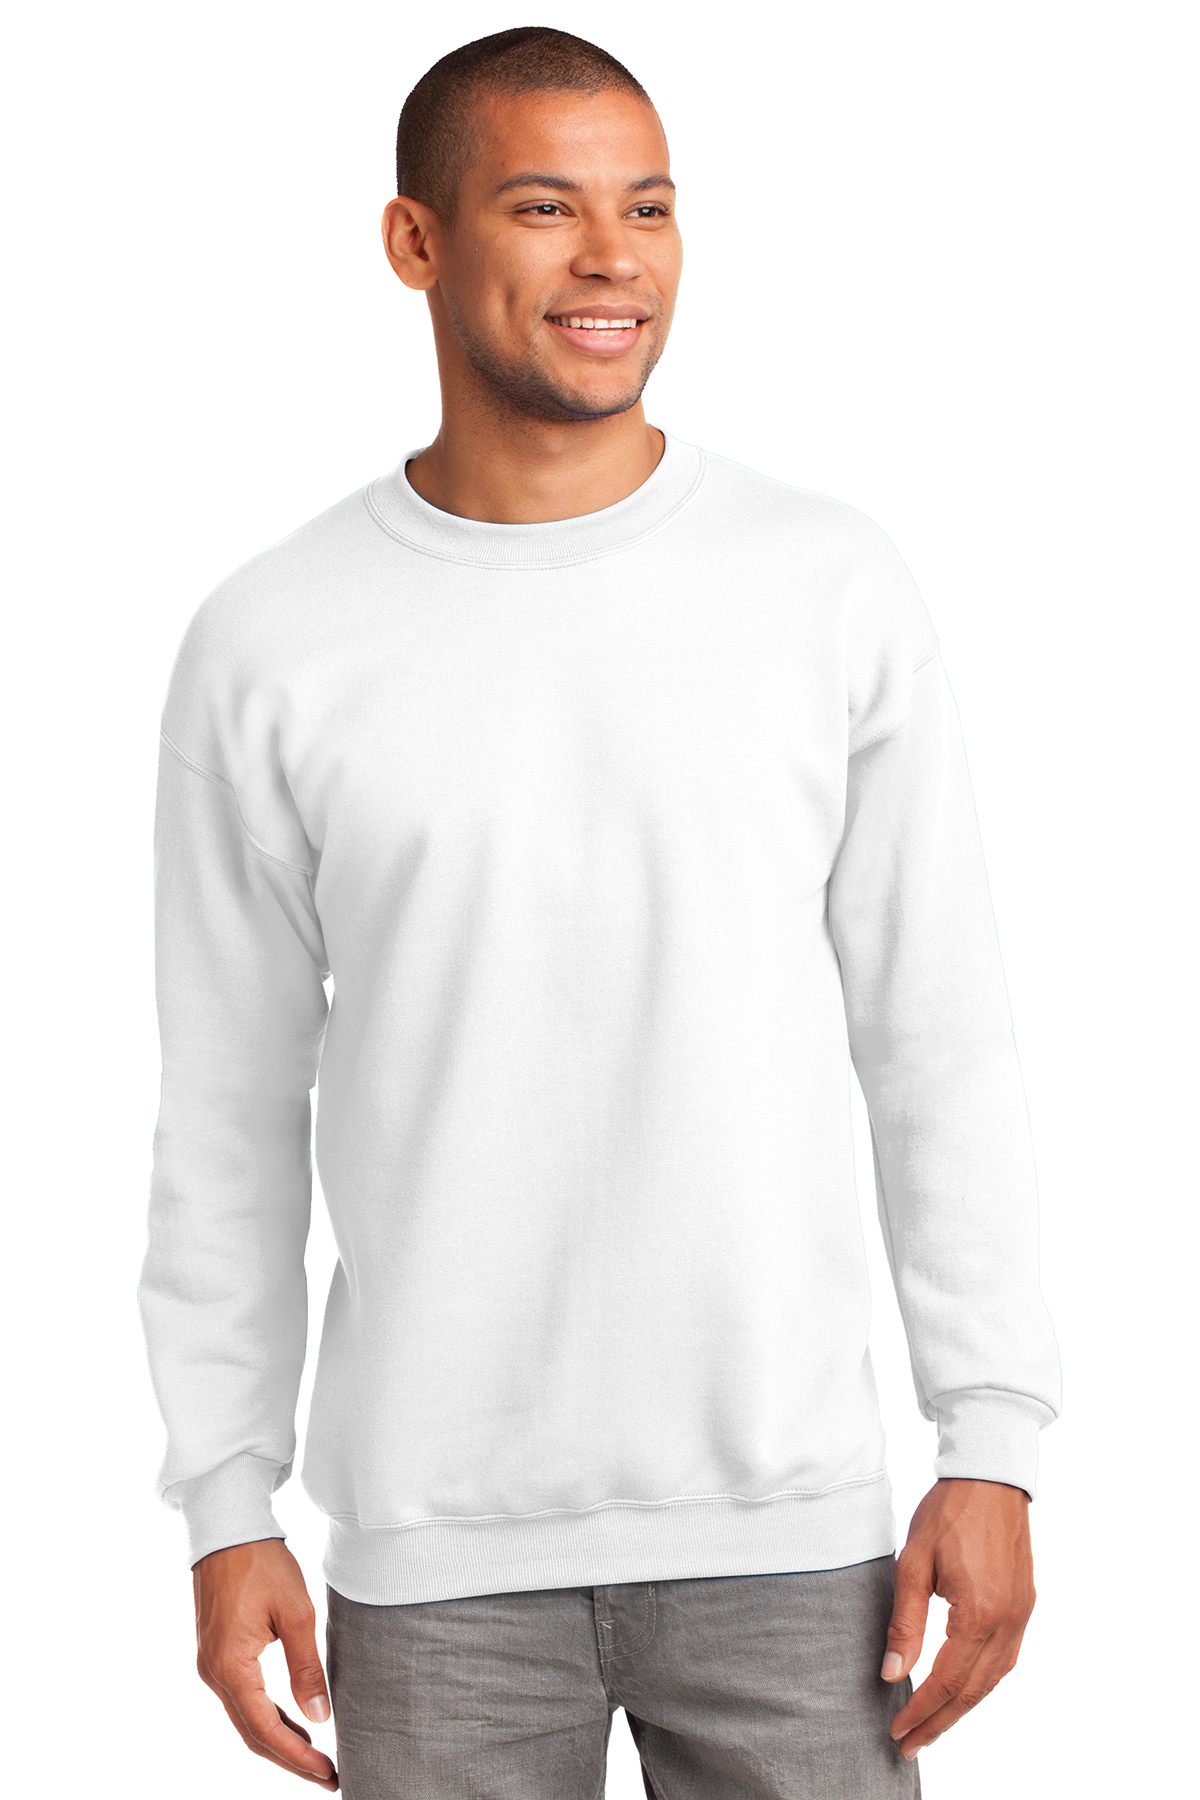 Port /& Company Crewneck Sweatshirt L White PC90Y